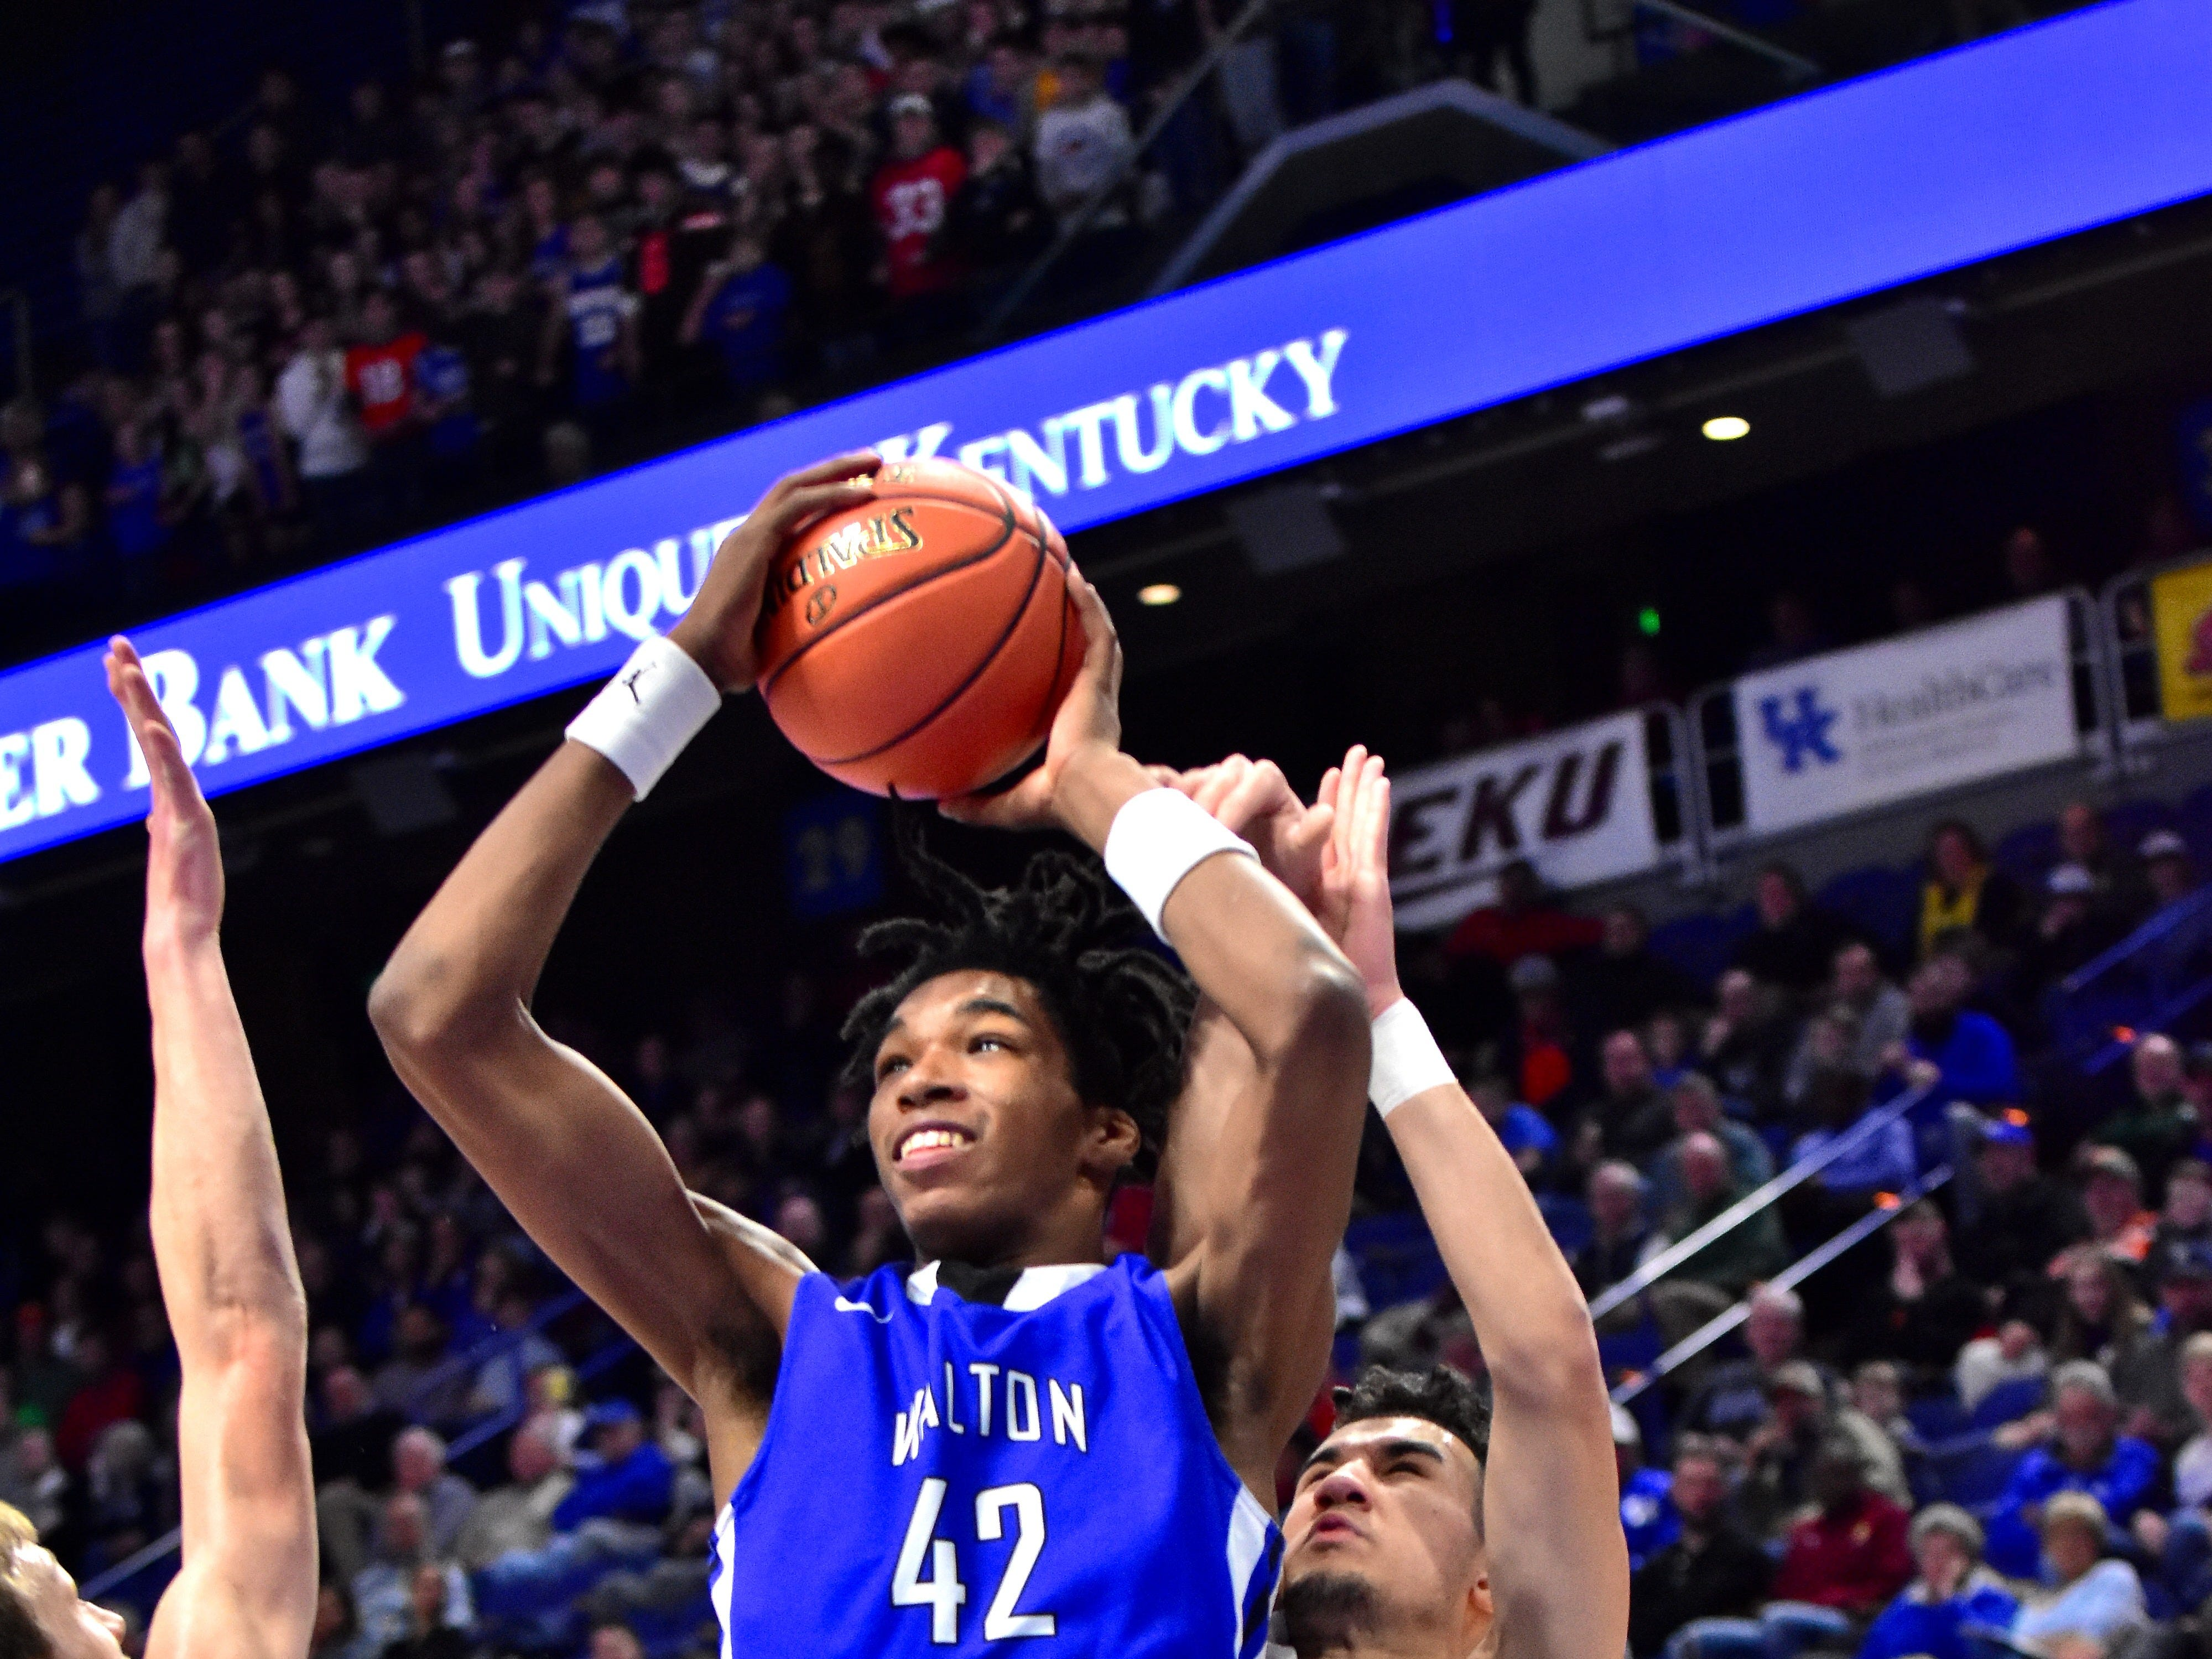 Walton Verona's Dieonte Miles eyes points for the Bearcats at the KHSAA Sweet 16 Tournament at Rupp Arena in Lexington, KY, March 6, 2019